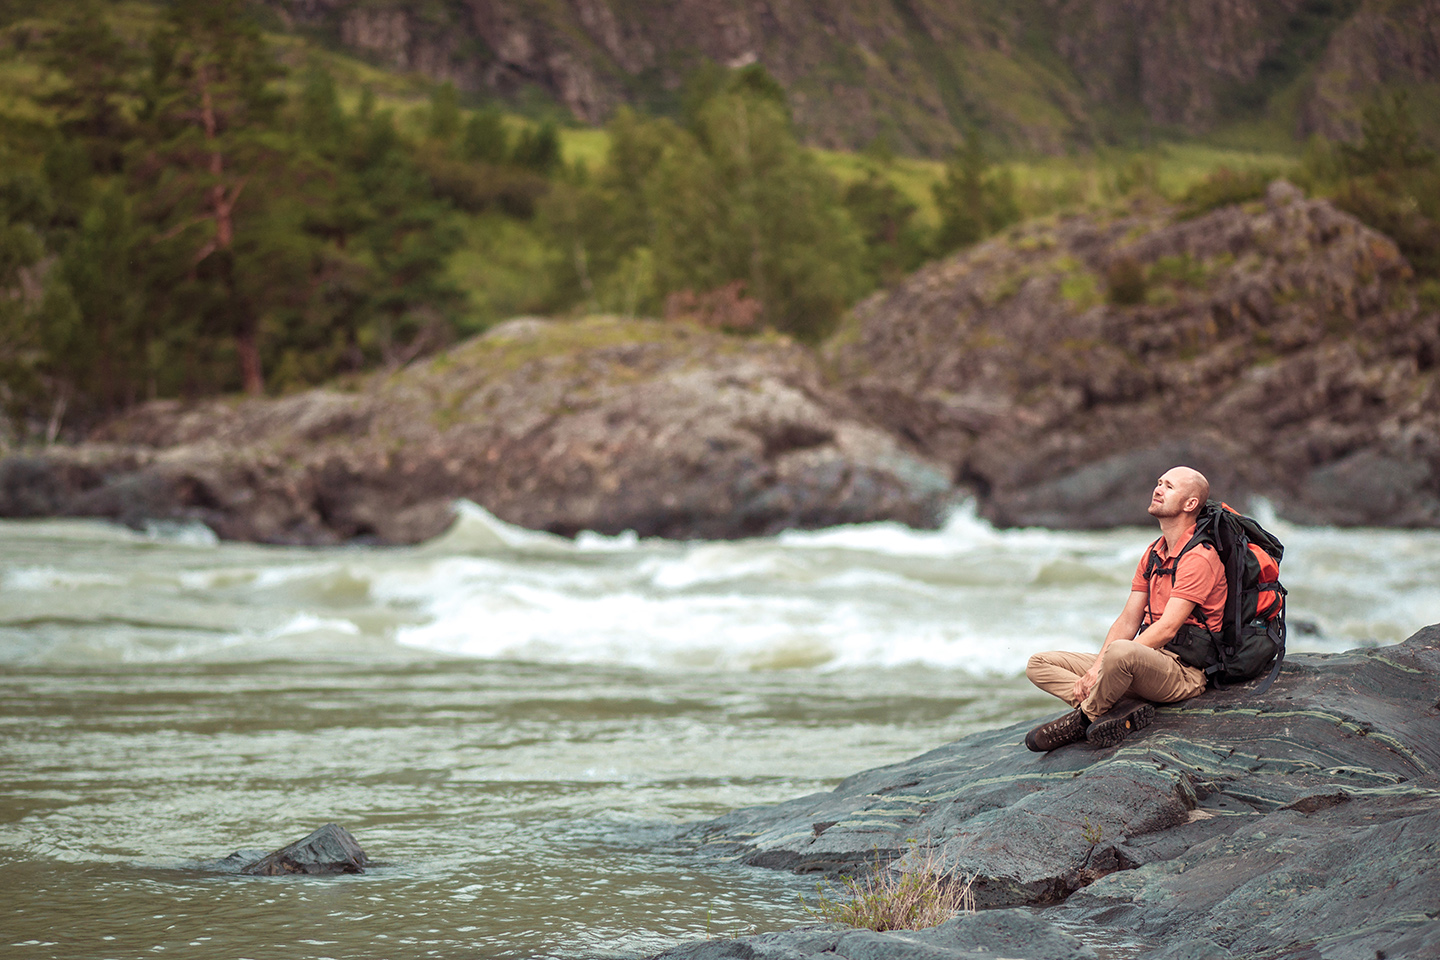 A man sitting and breathing deeply by the side of a rushing river